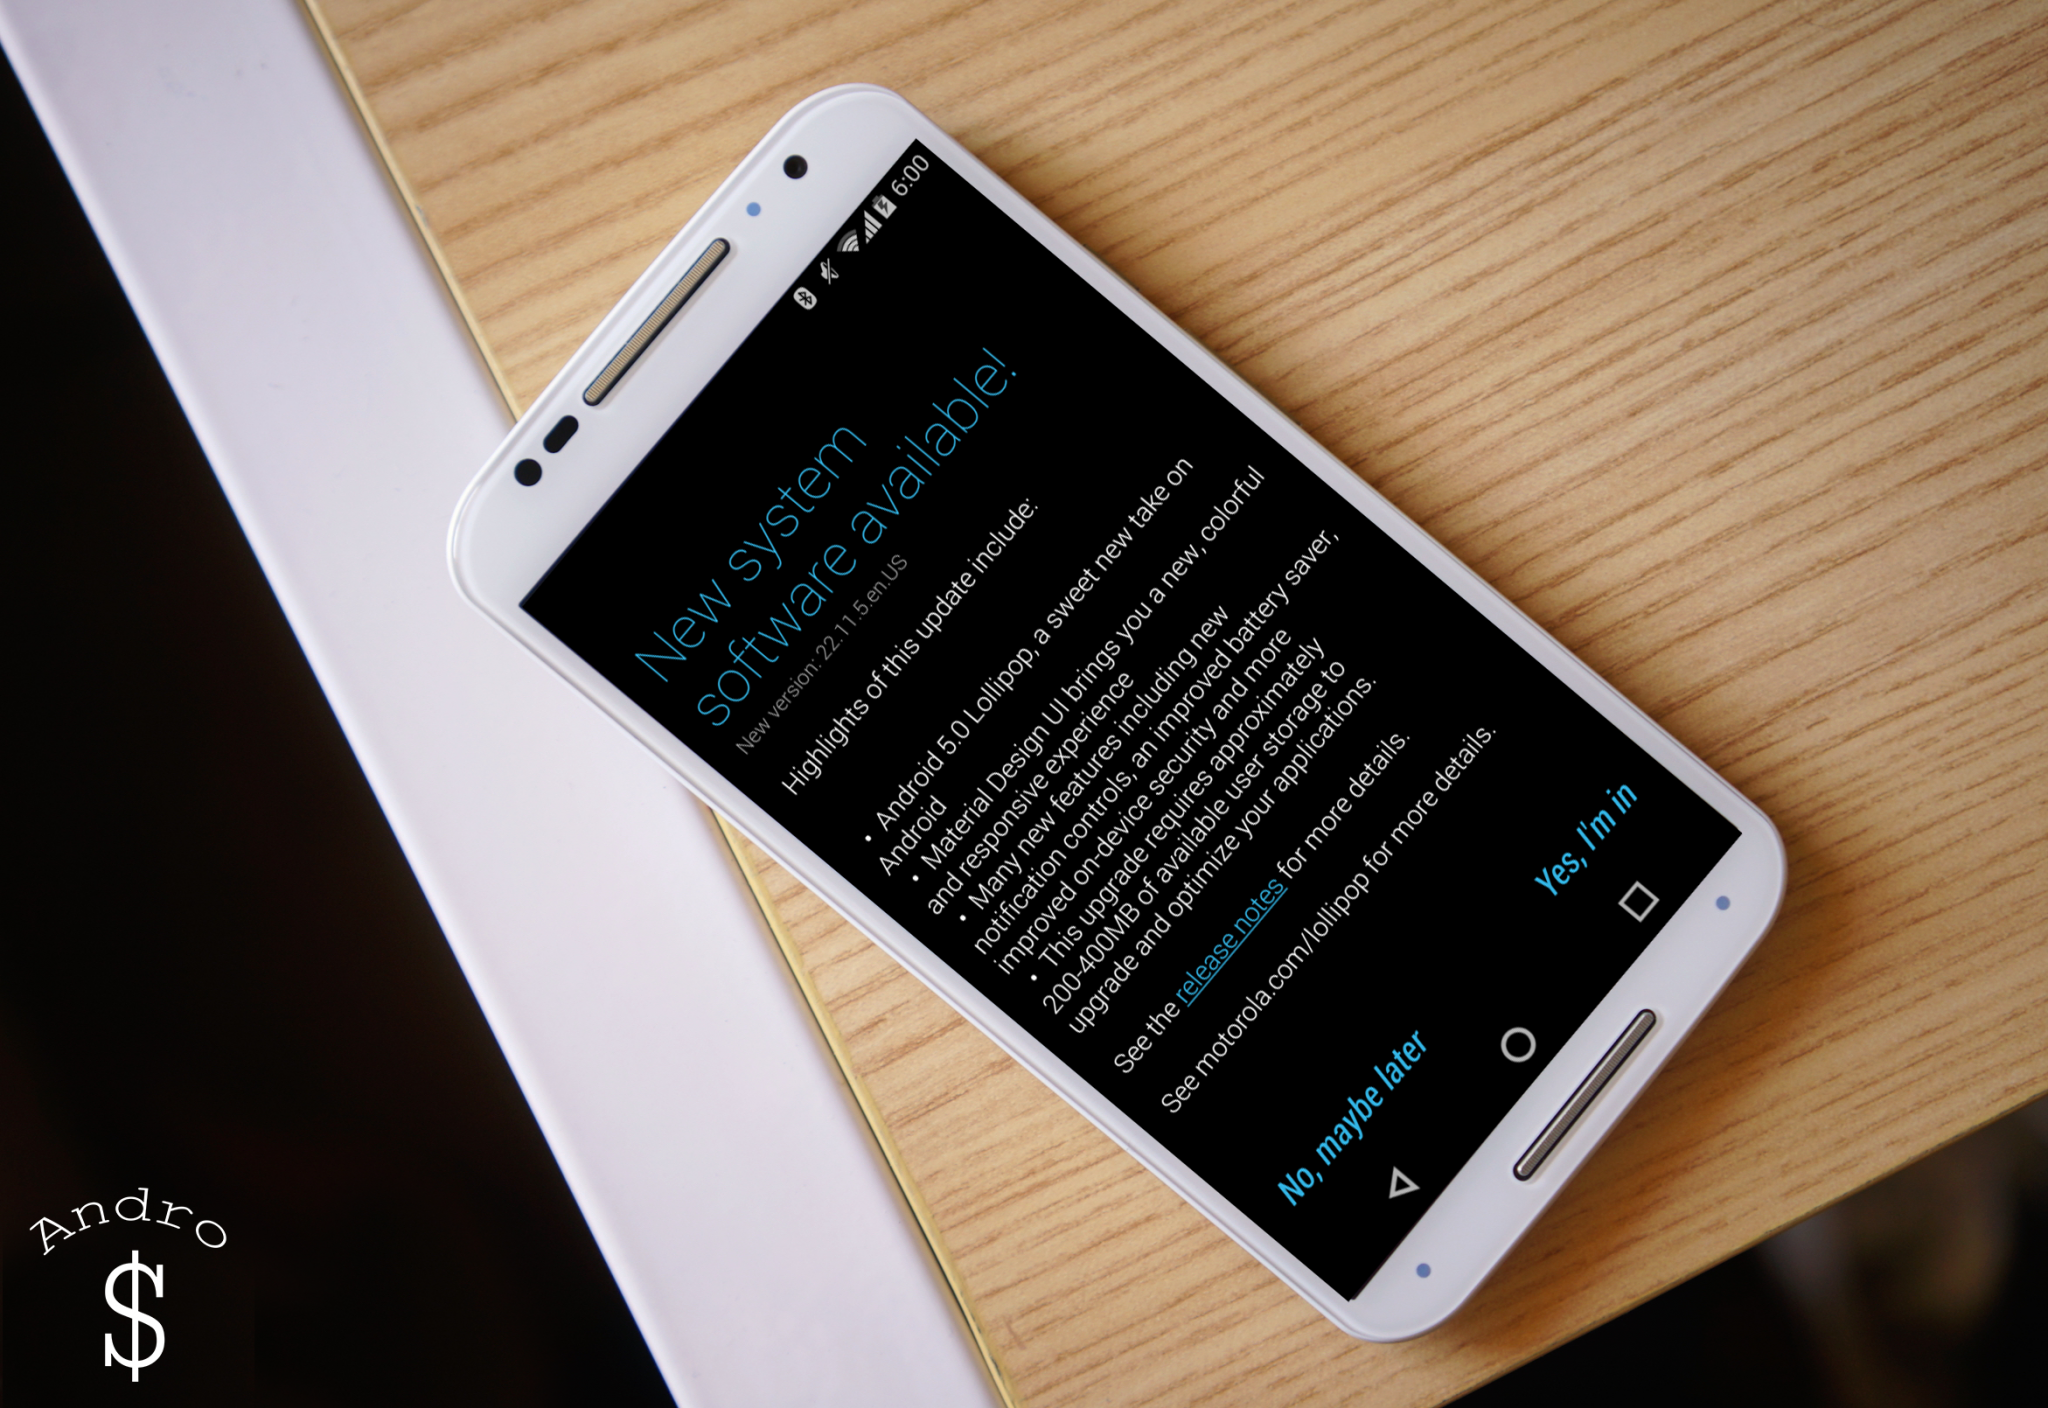 Moto X (2014) Android 5.0 Lollipop Software Update – Andro Dollar